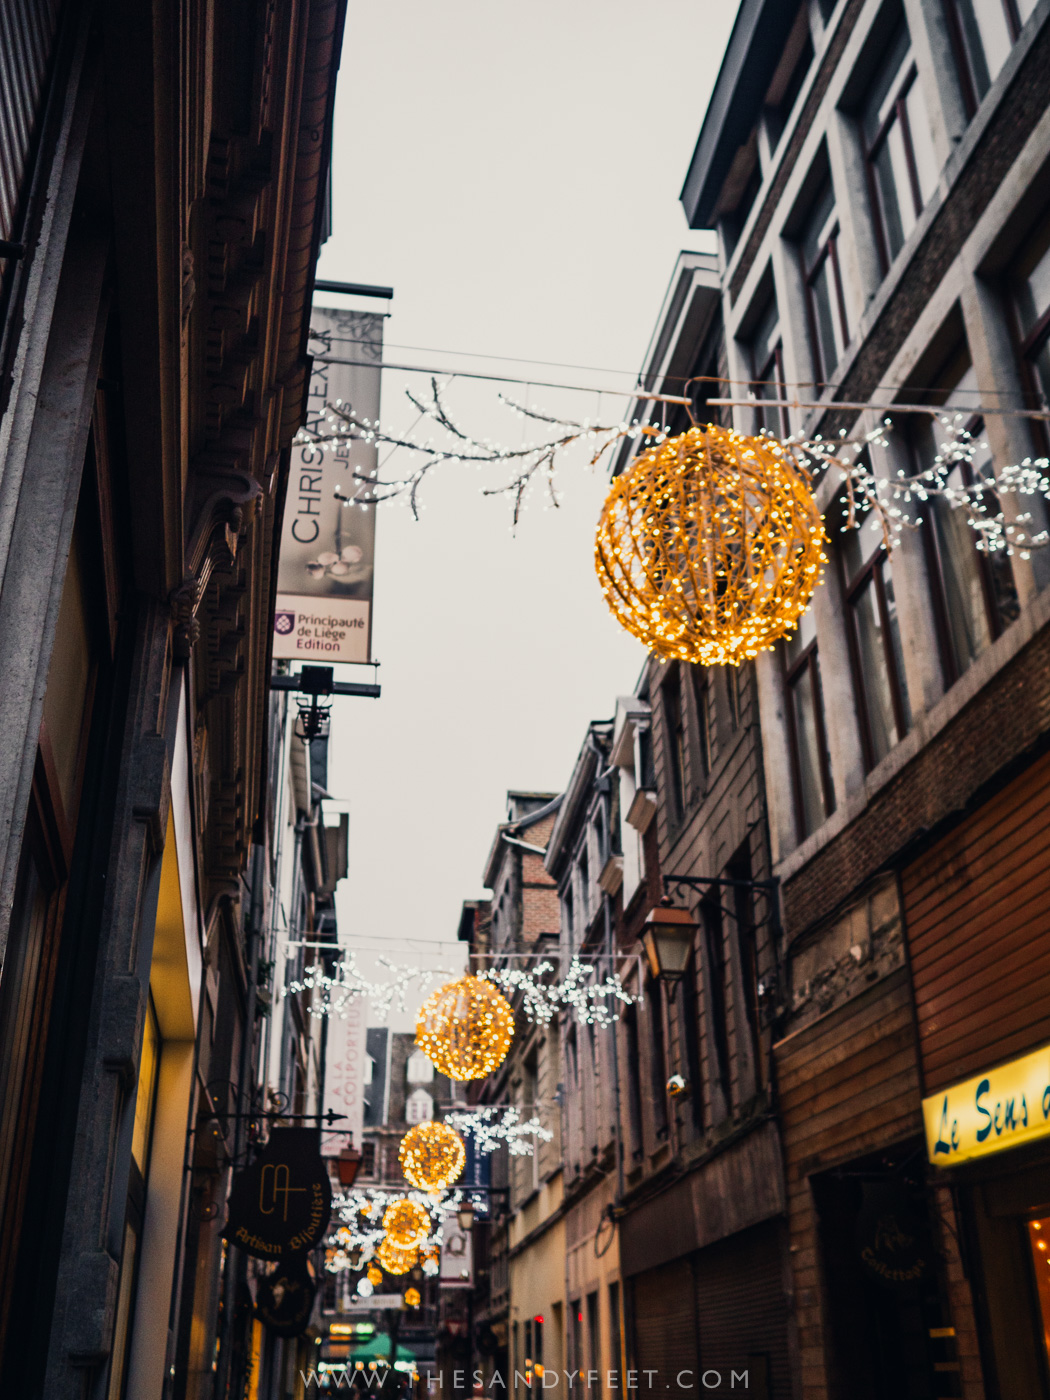 Liege's Christmas Market | Top Things To Do In Liege in Belgium's Wallonia Region.